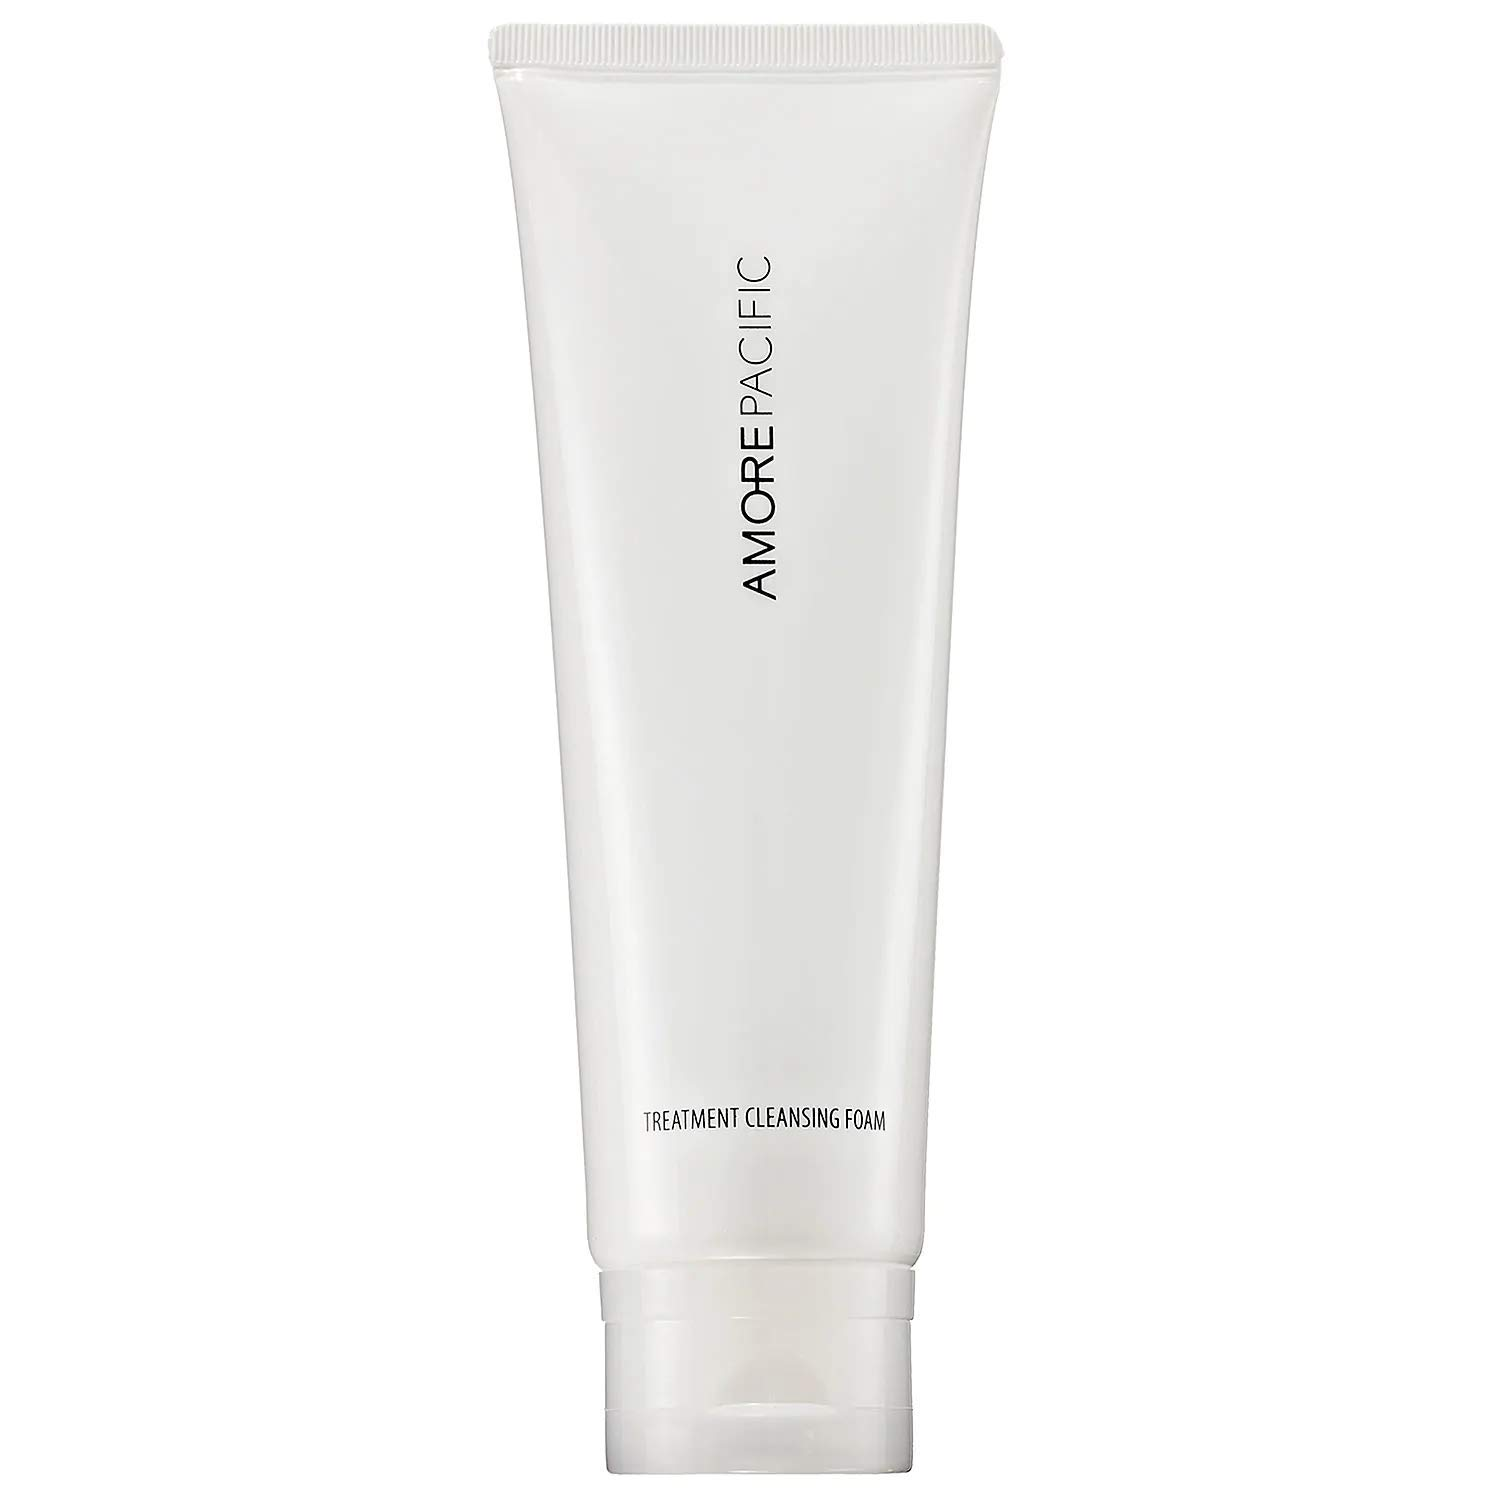 AMOREPACIFIC Treatment Cleansing Foam Cream Daily Facial Face Cleanser, 4.1 Fl Oz